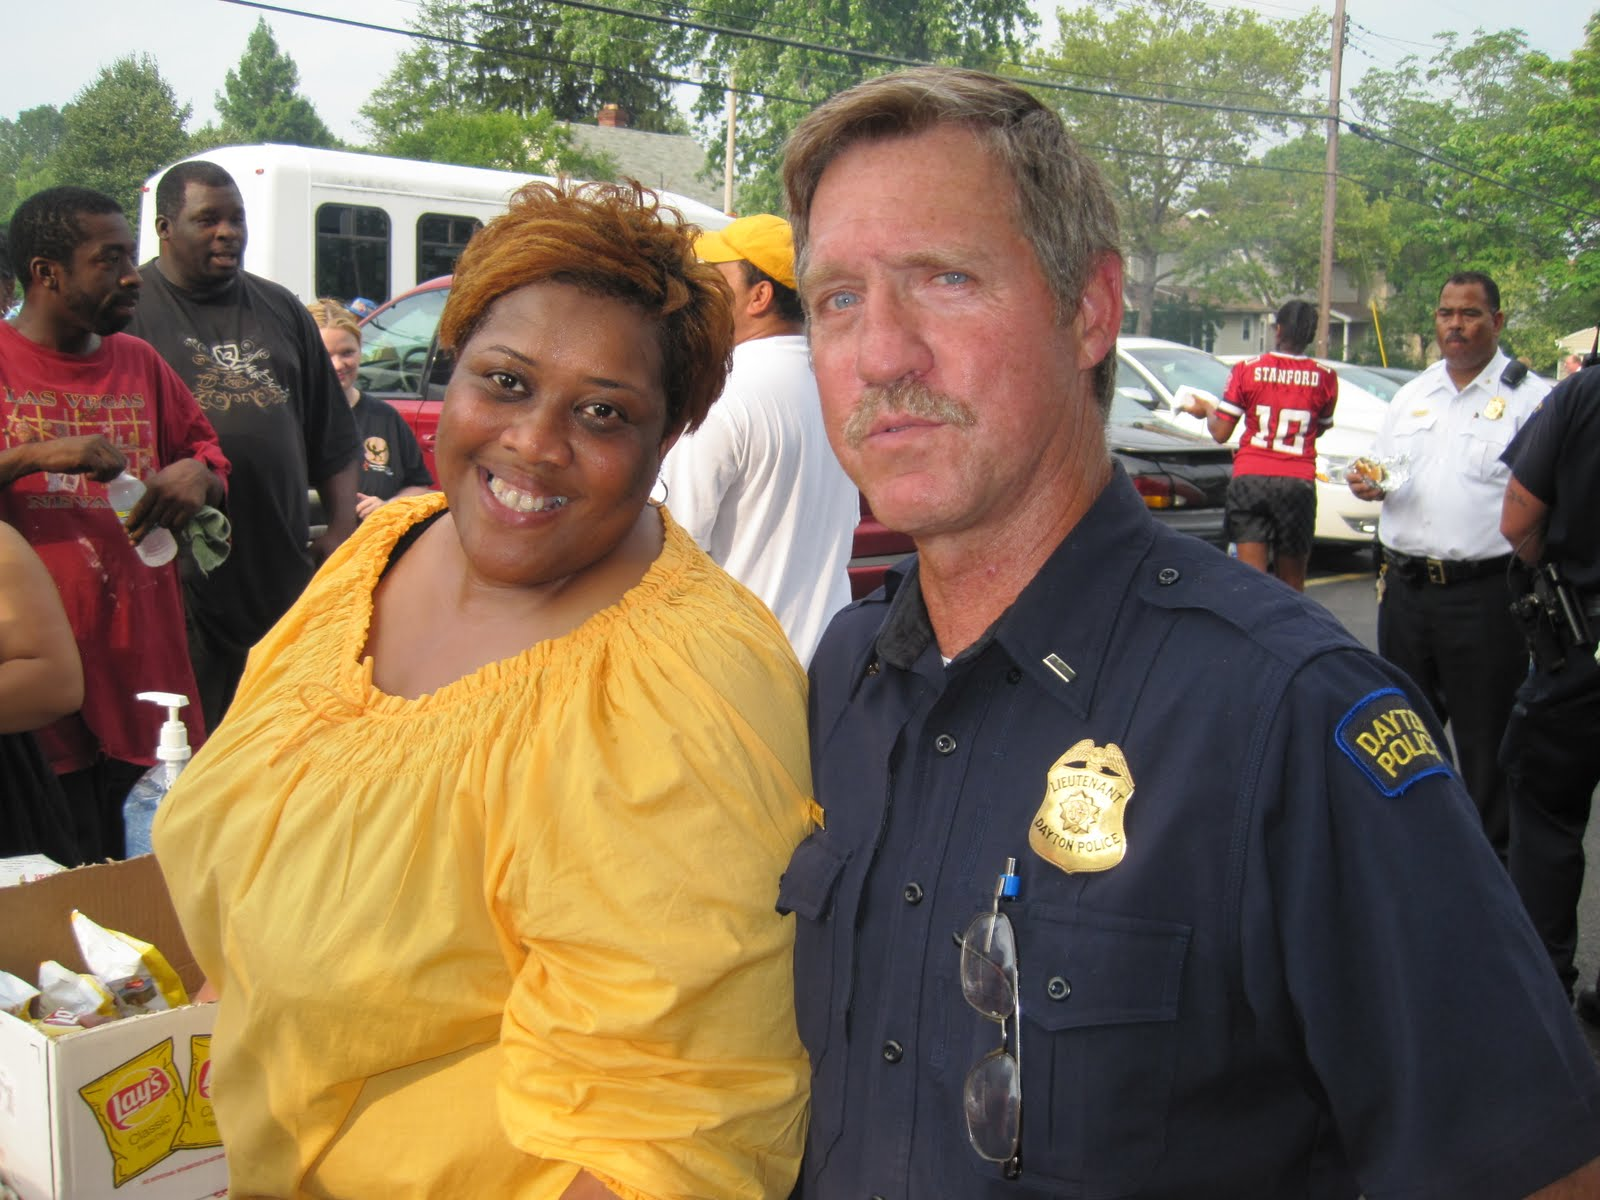 community policing  The Department of Justice defines communityPolice Helping The Community